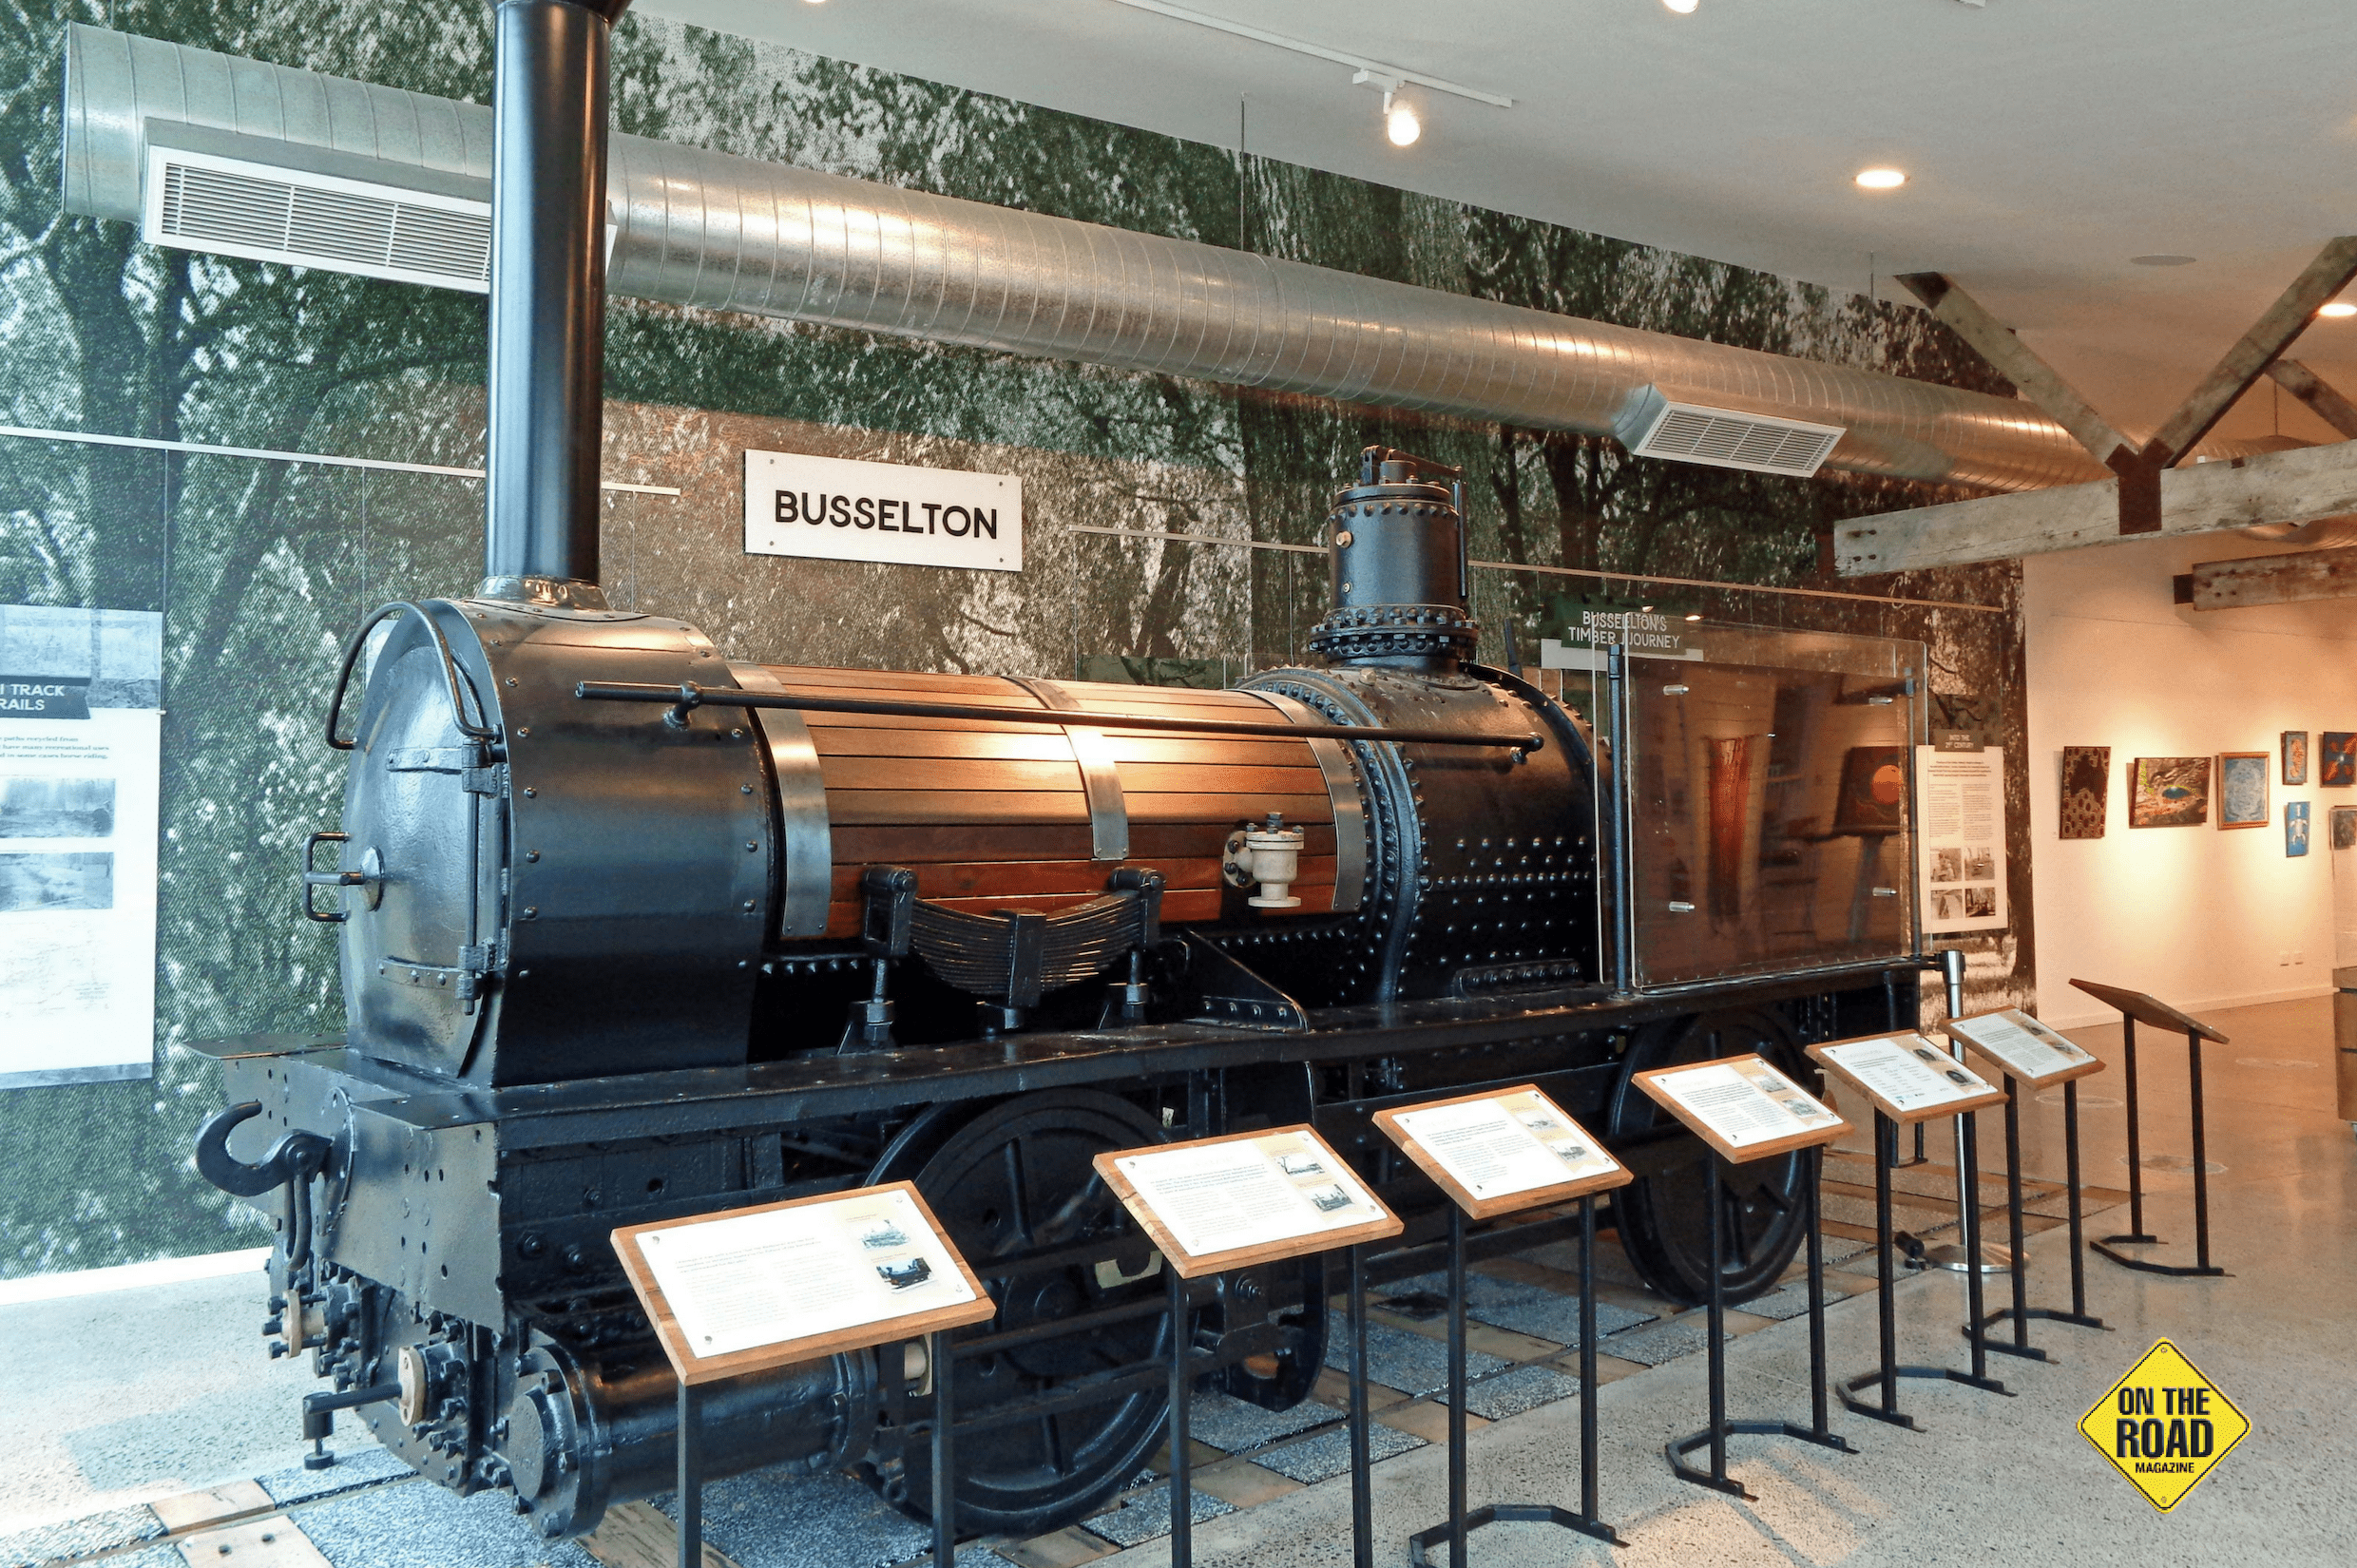 See Western Australia's first steam locomotive on display at Busselton visitor centre.